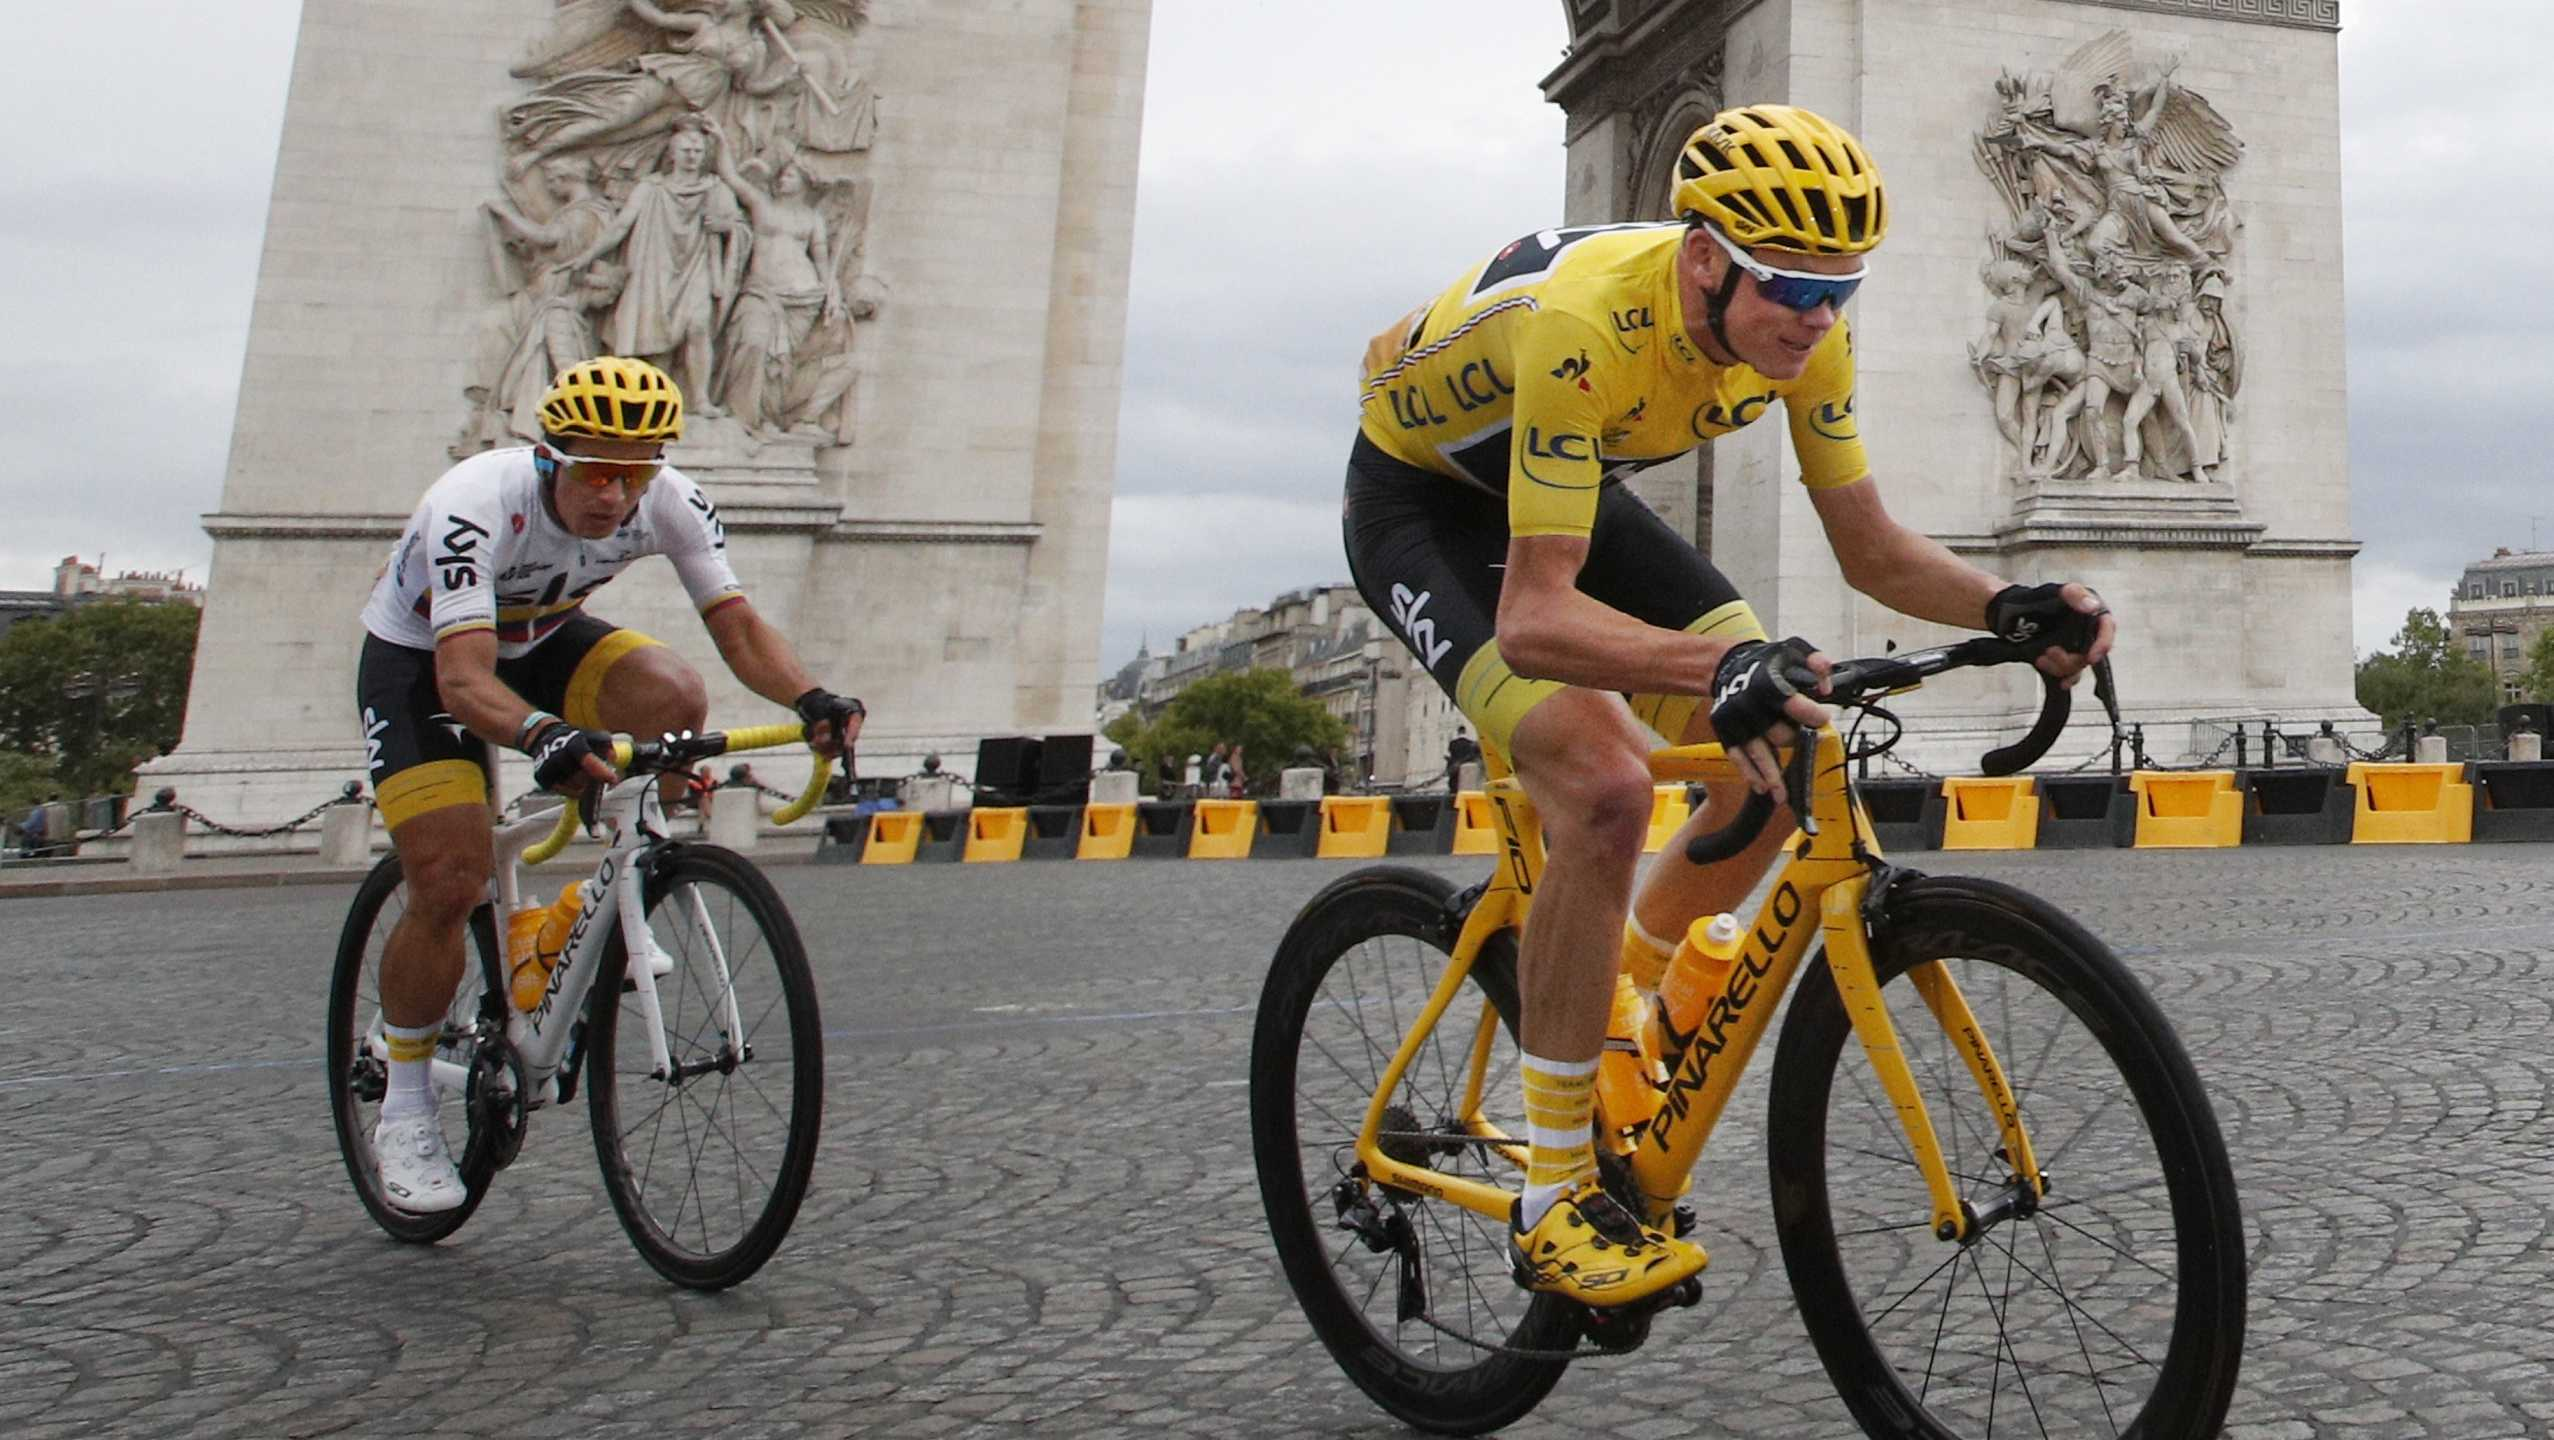 Britain's Chris Froome, wearing the overall leader's yellow jersey, is followed by teammate Colombia's Sergio Henao Montoya, as they pass the Arc de Triomphe during the twenty-first and last stage of the Tour de France cycling race over 64 miles, starting in Montgeron and finish in Paris, France, Sunday, July 23, 2017.